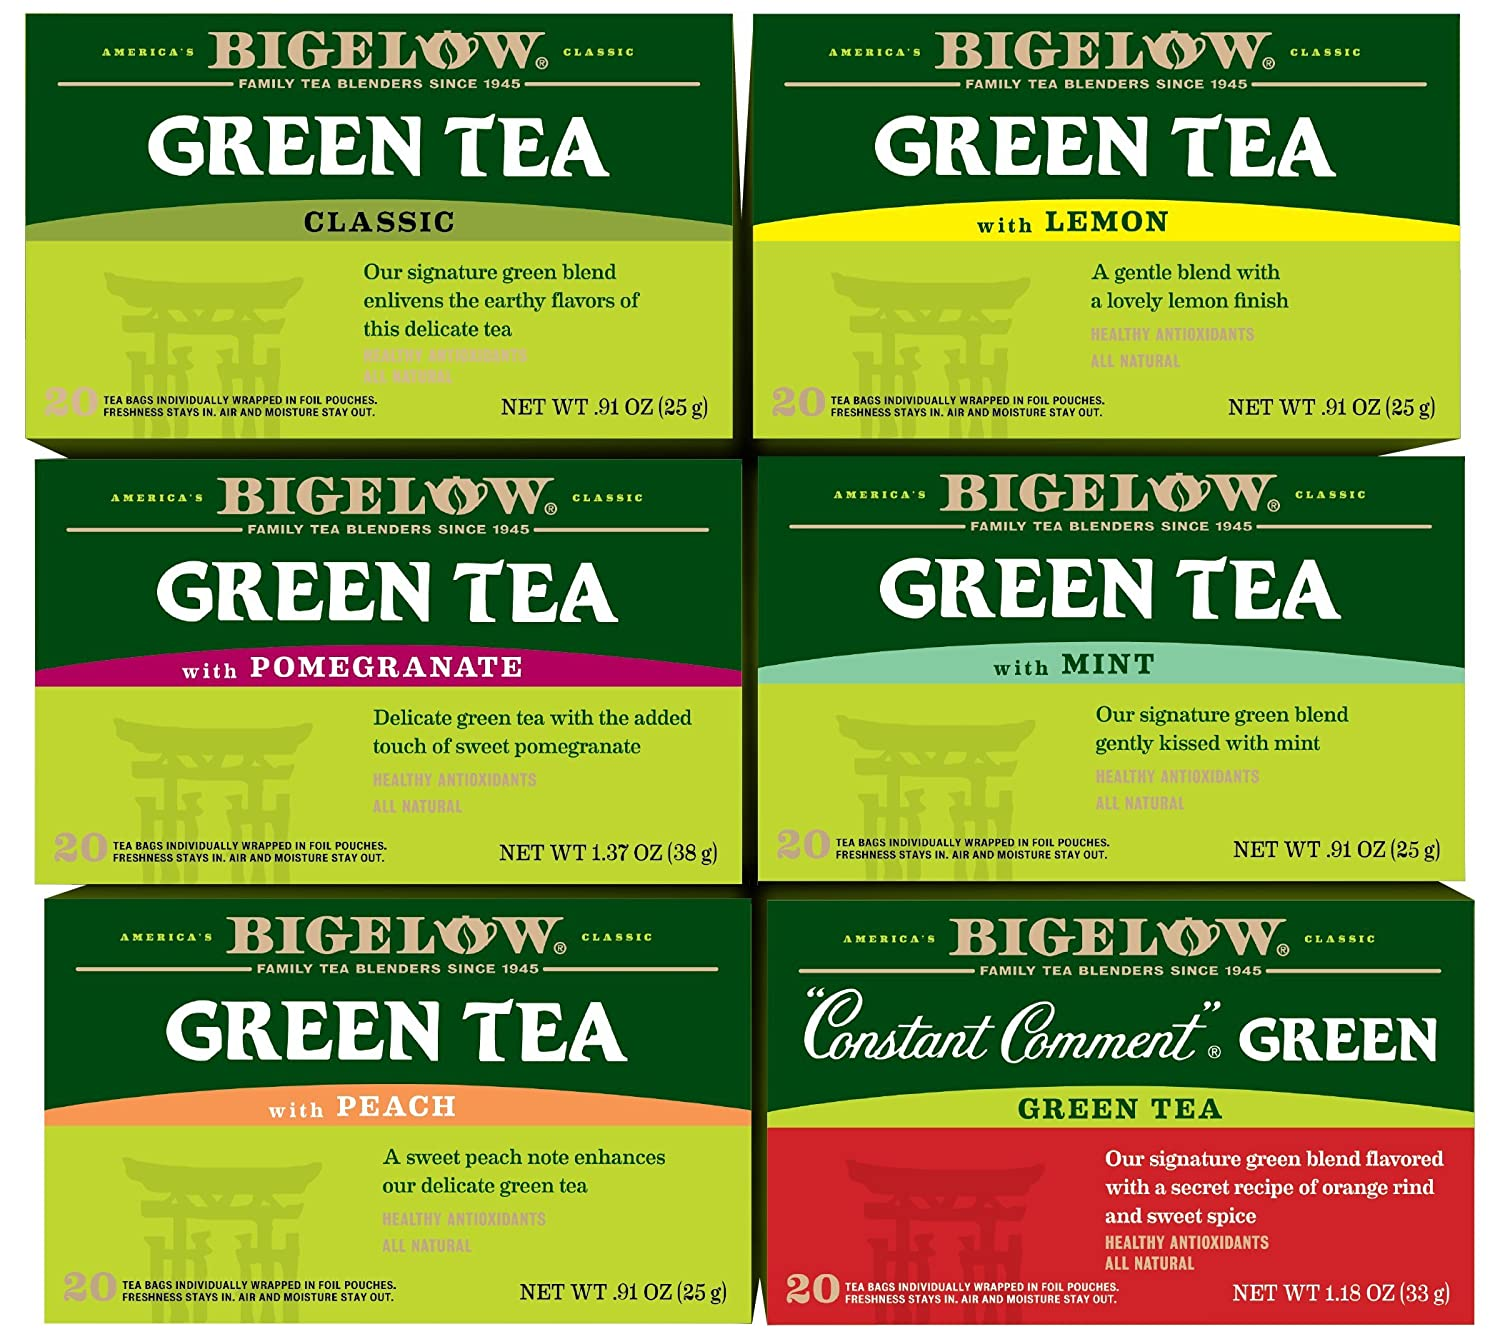 Bigelow Green Tea 6 Flavor Variety Pack, 20 Count Box (Pack of 6) Caffeinated Green Teas 120 Tea Bags Total